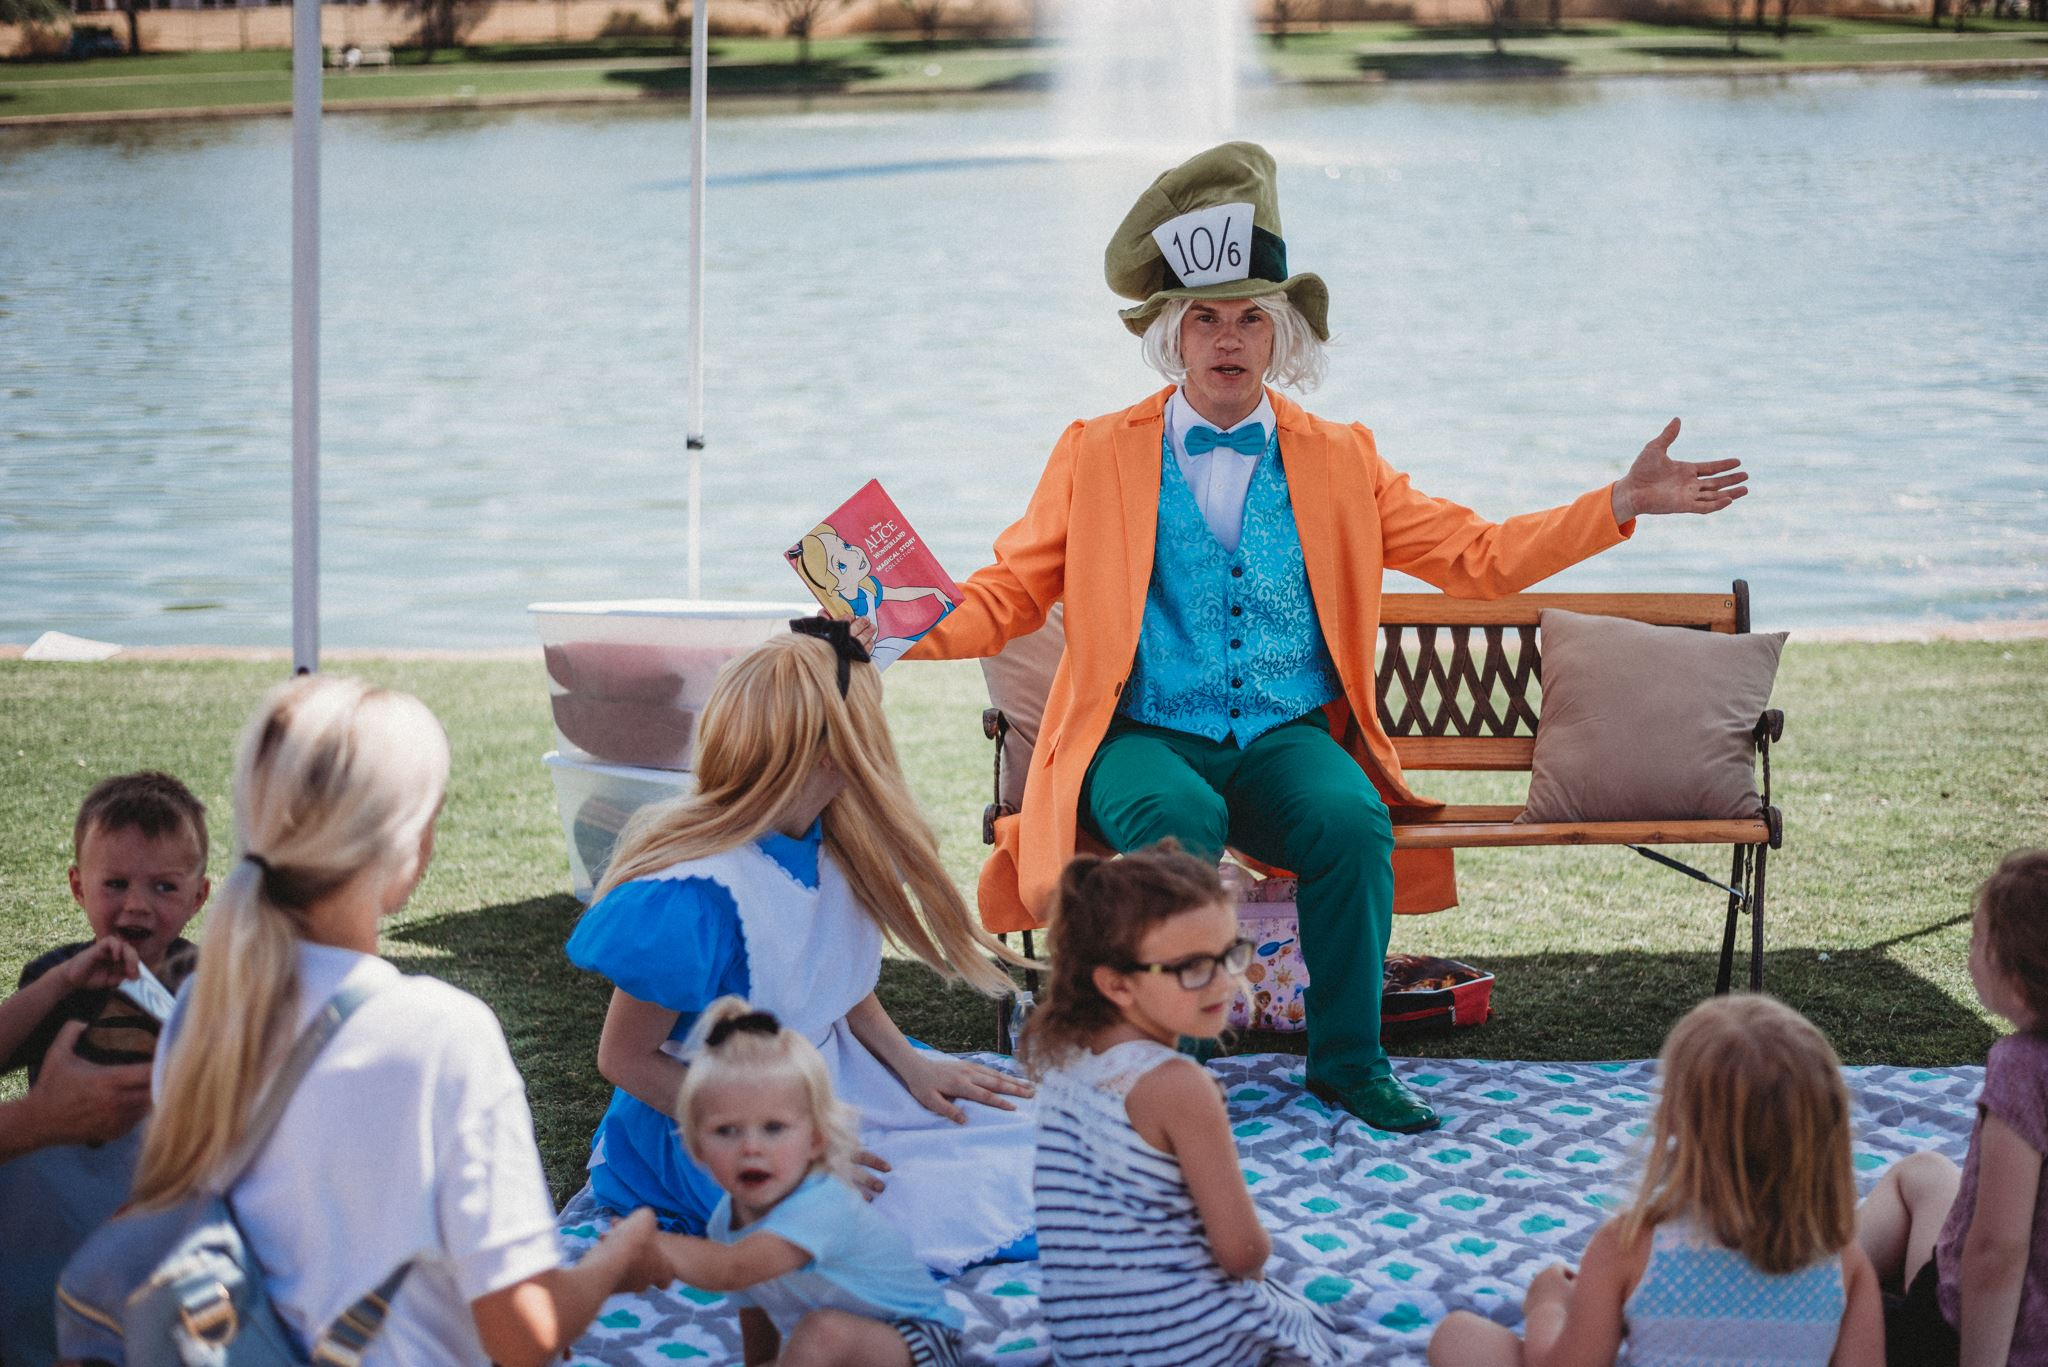 Man Dressed as the Mad-Hatter from Alice in Wonderland Holding Out His Arm